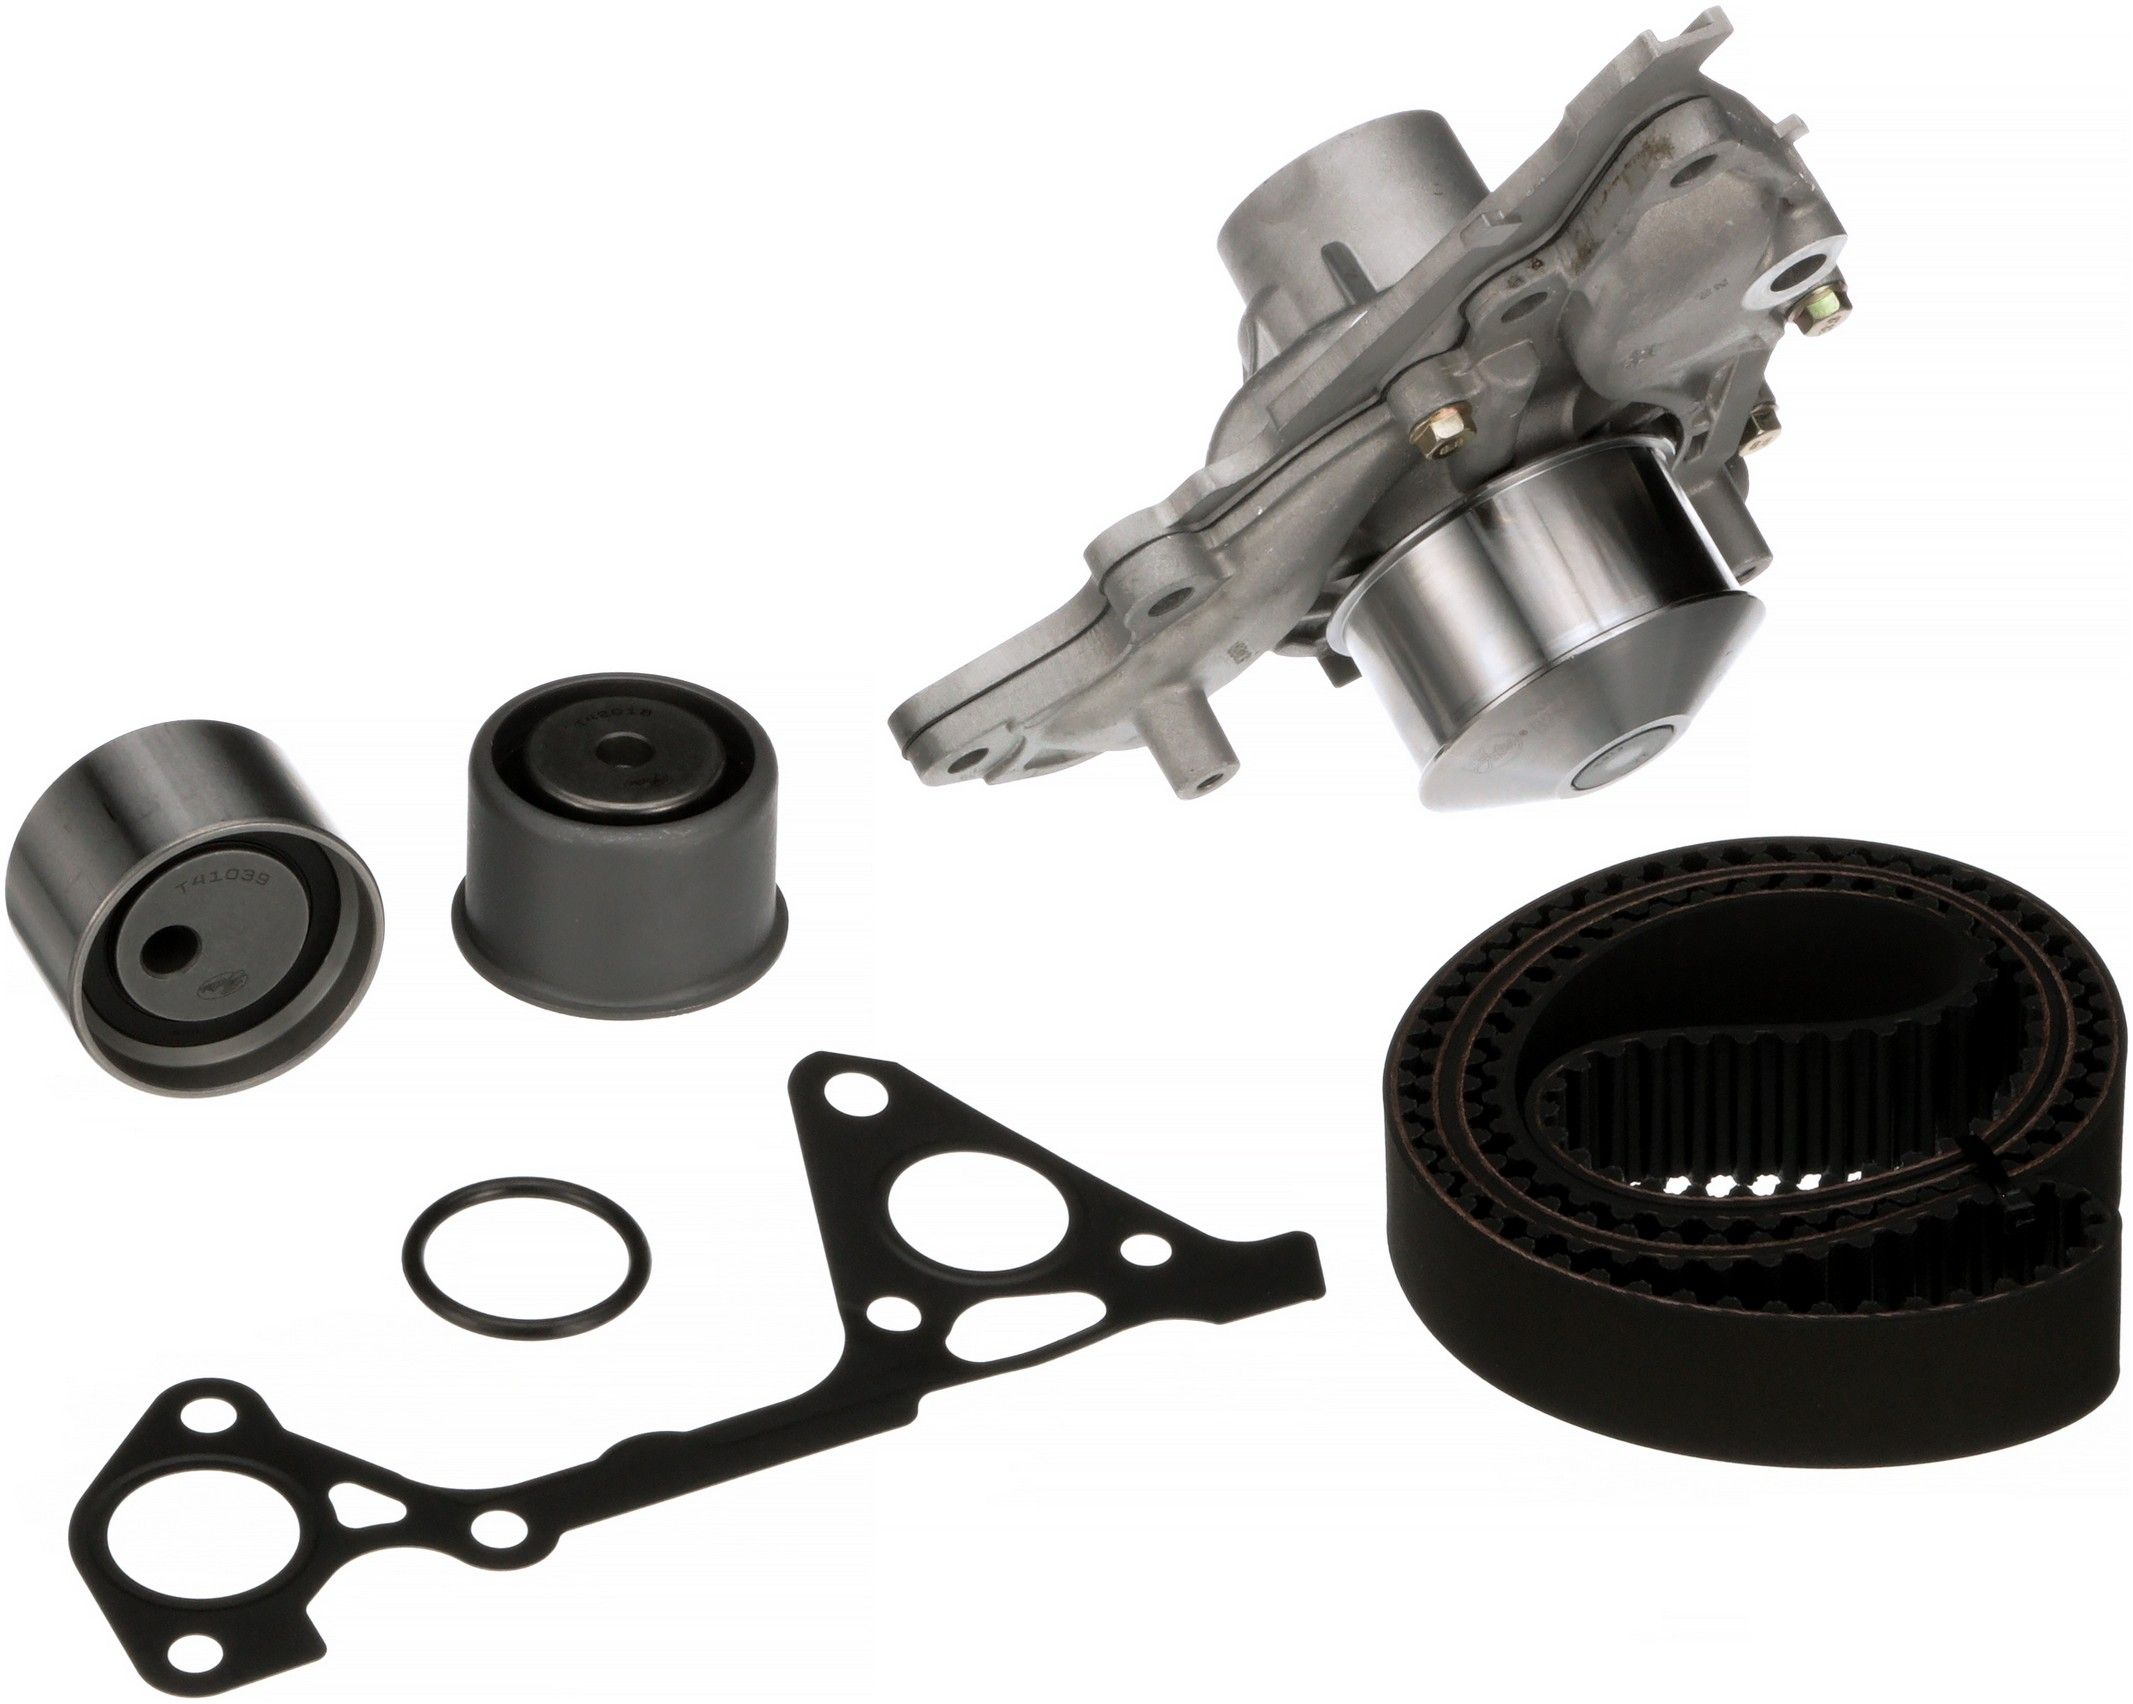 Mitsubishi Endeavor Engine Timing Belt Kit With Water Pump Wiring Harness 2006 Endevour 2004 6 Cyl 38l Gates Tckwp287 Sept 30 Older Interference Application